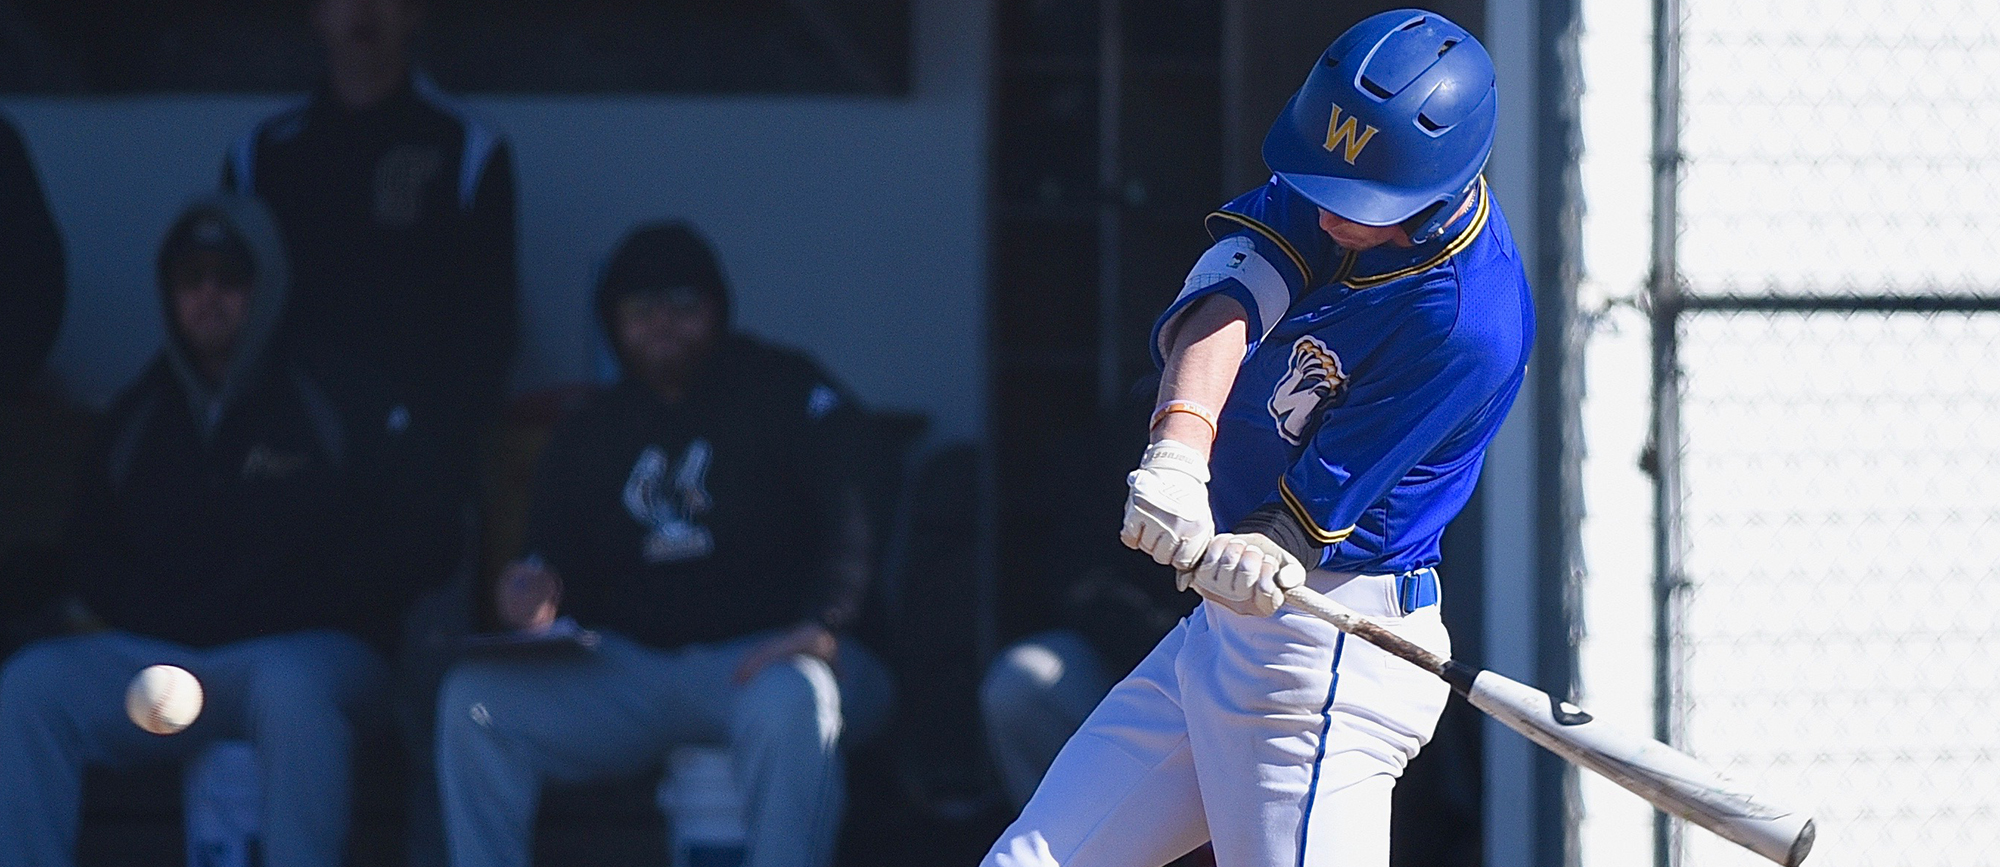 Joe Webber recorded two hits in Western New England's 6-3 loss to UMass Dartmouth on Thursday. (Photo by Jim Balderston)